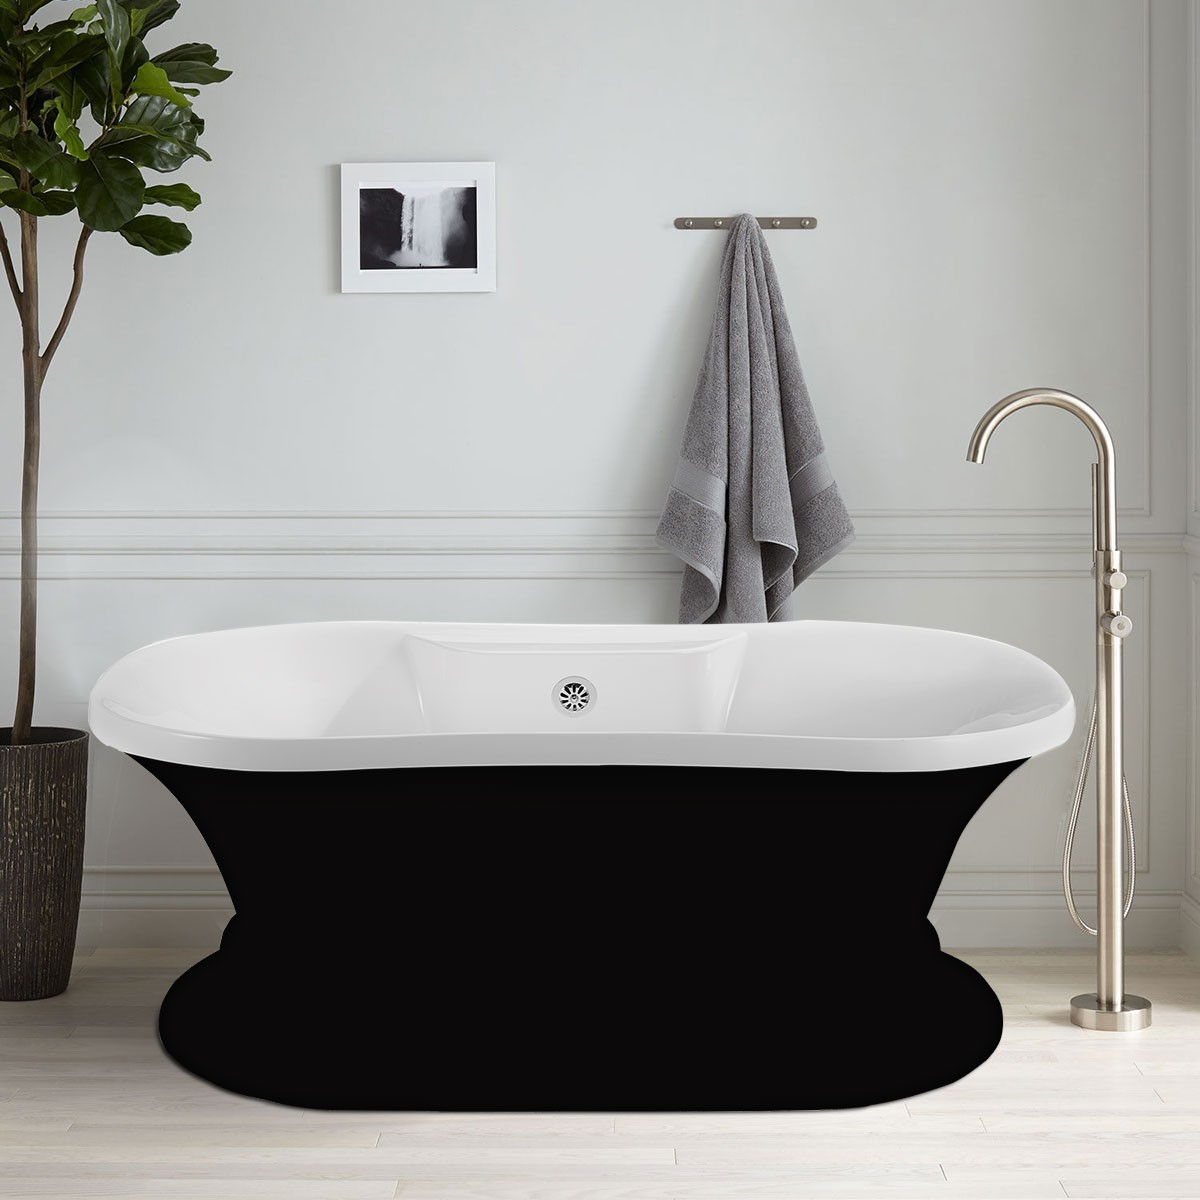 60 In Freestanding Bathtub - Acrylic Black (DK-A51601)